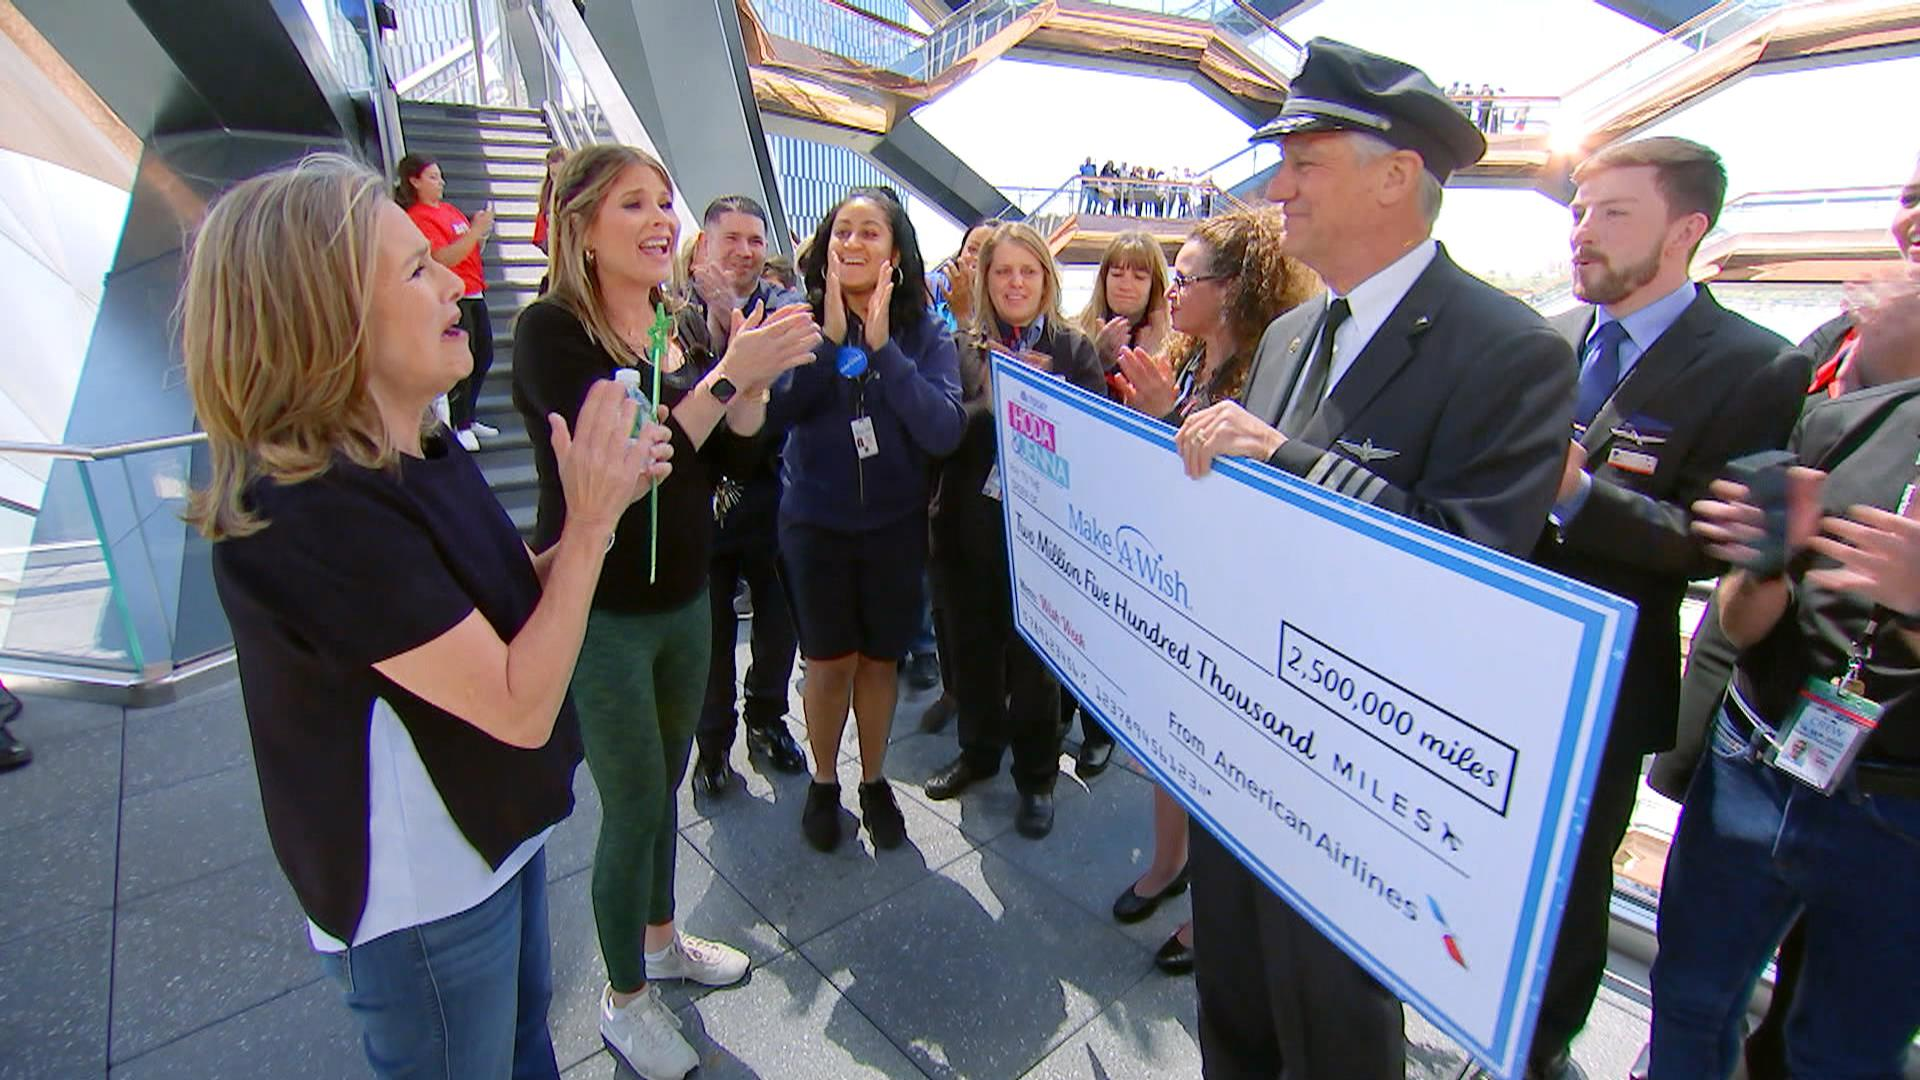 Jenna and Meredith climb NYC's Vessel for a good cause